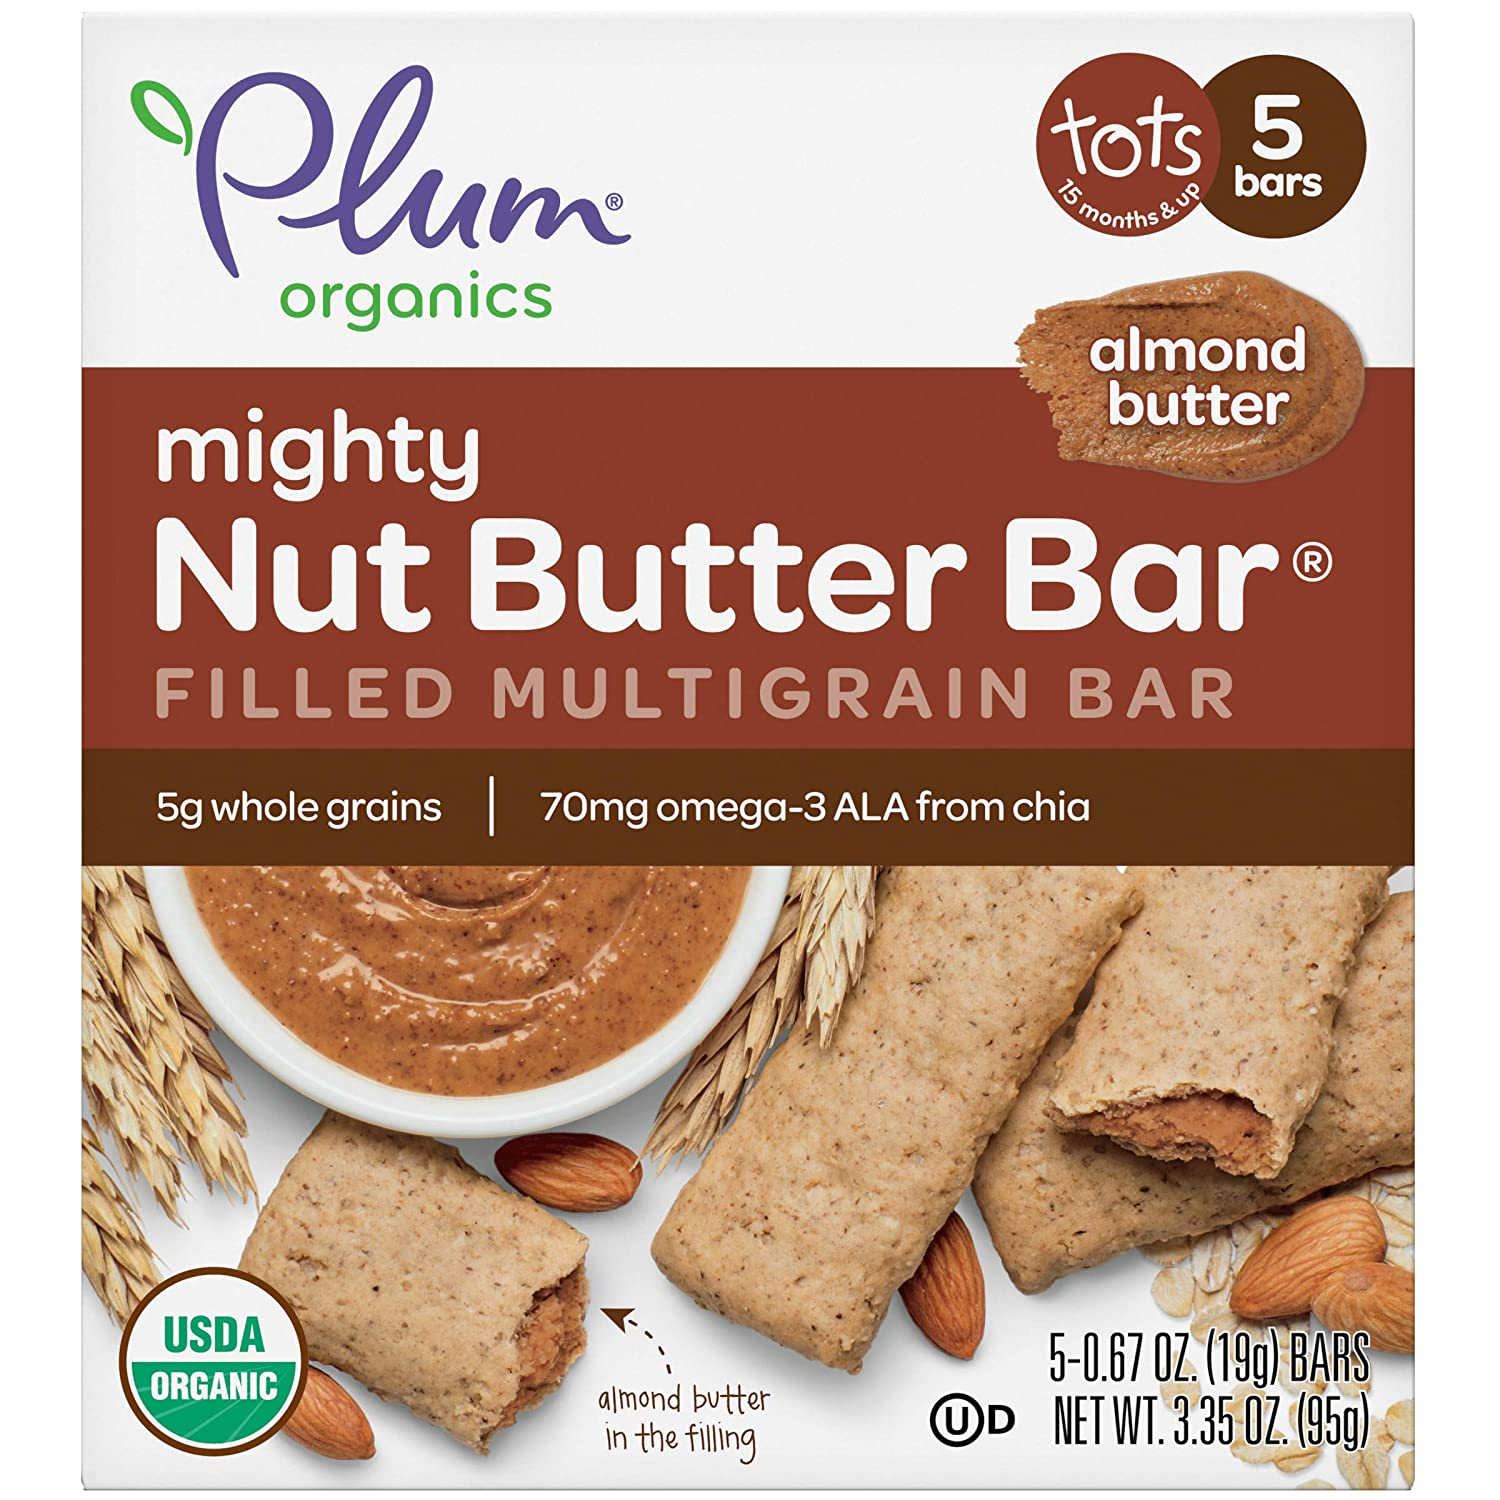 Plum Organics Mighty Nut Butter Bar, Toddler Snack Bar, Almond Butter, 3 Ounce Box, 5 Count (Pack of 8)